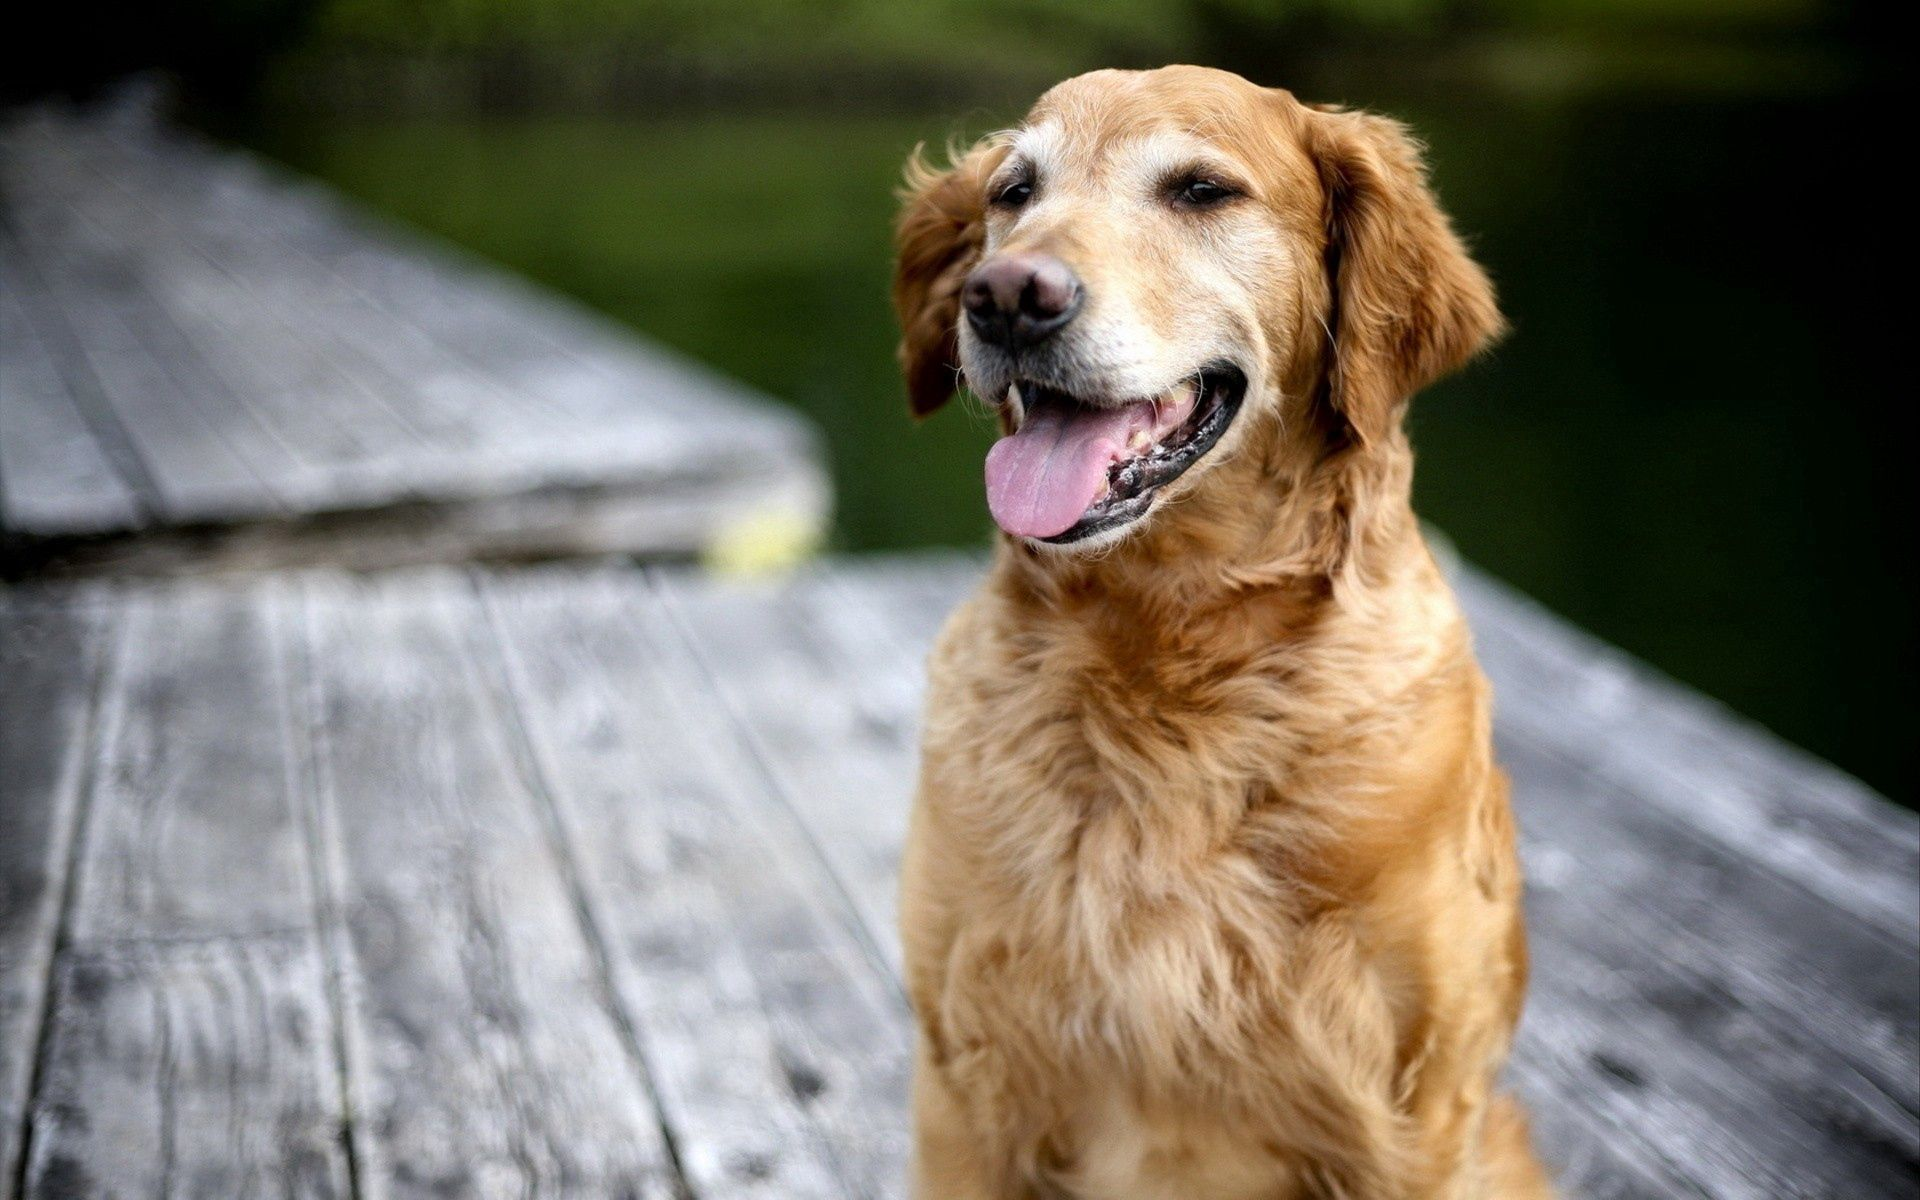 66918 download wallpaper Animals, Dog, Labrador, Muzzle, Language, Tongue, Relaxation, Rest screensavers and pictures for free